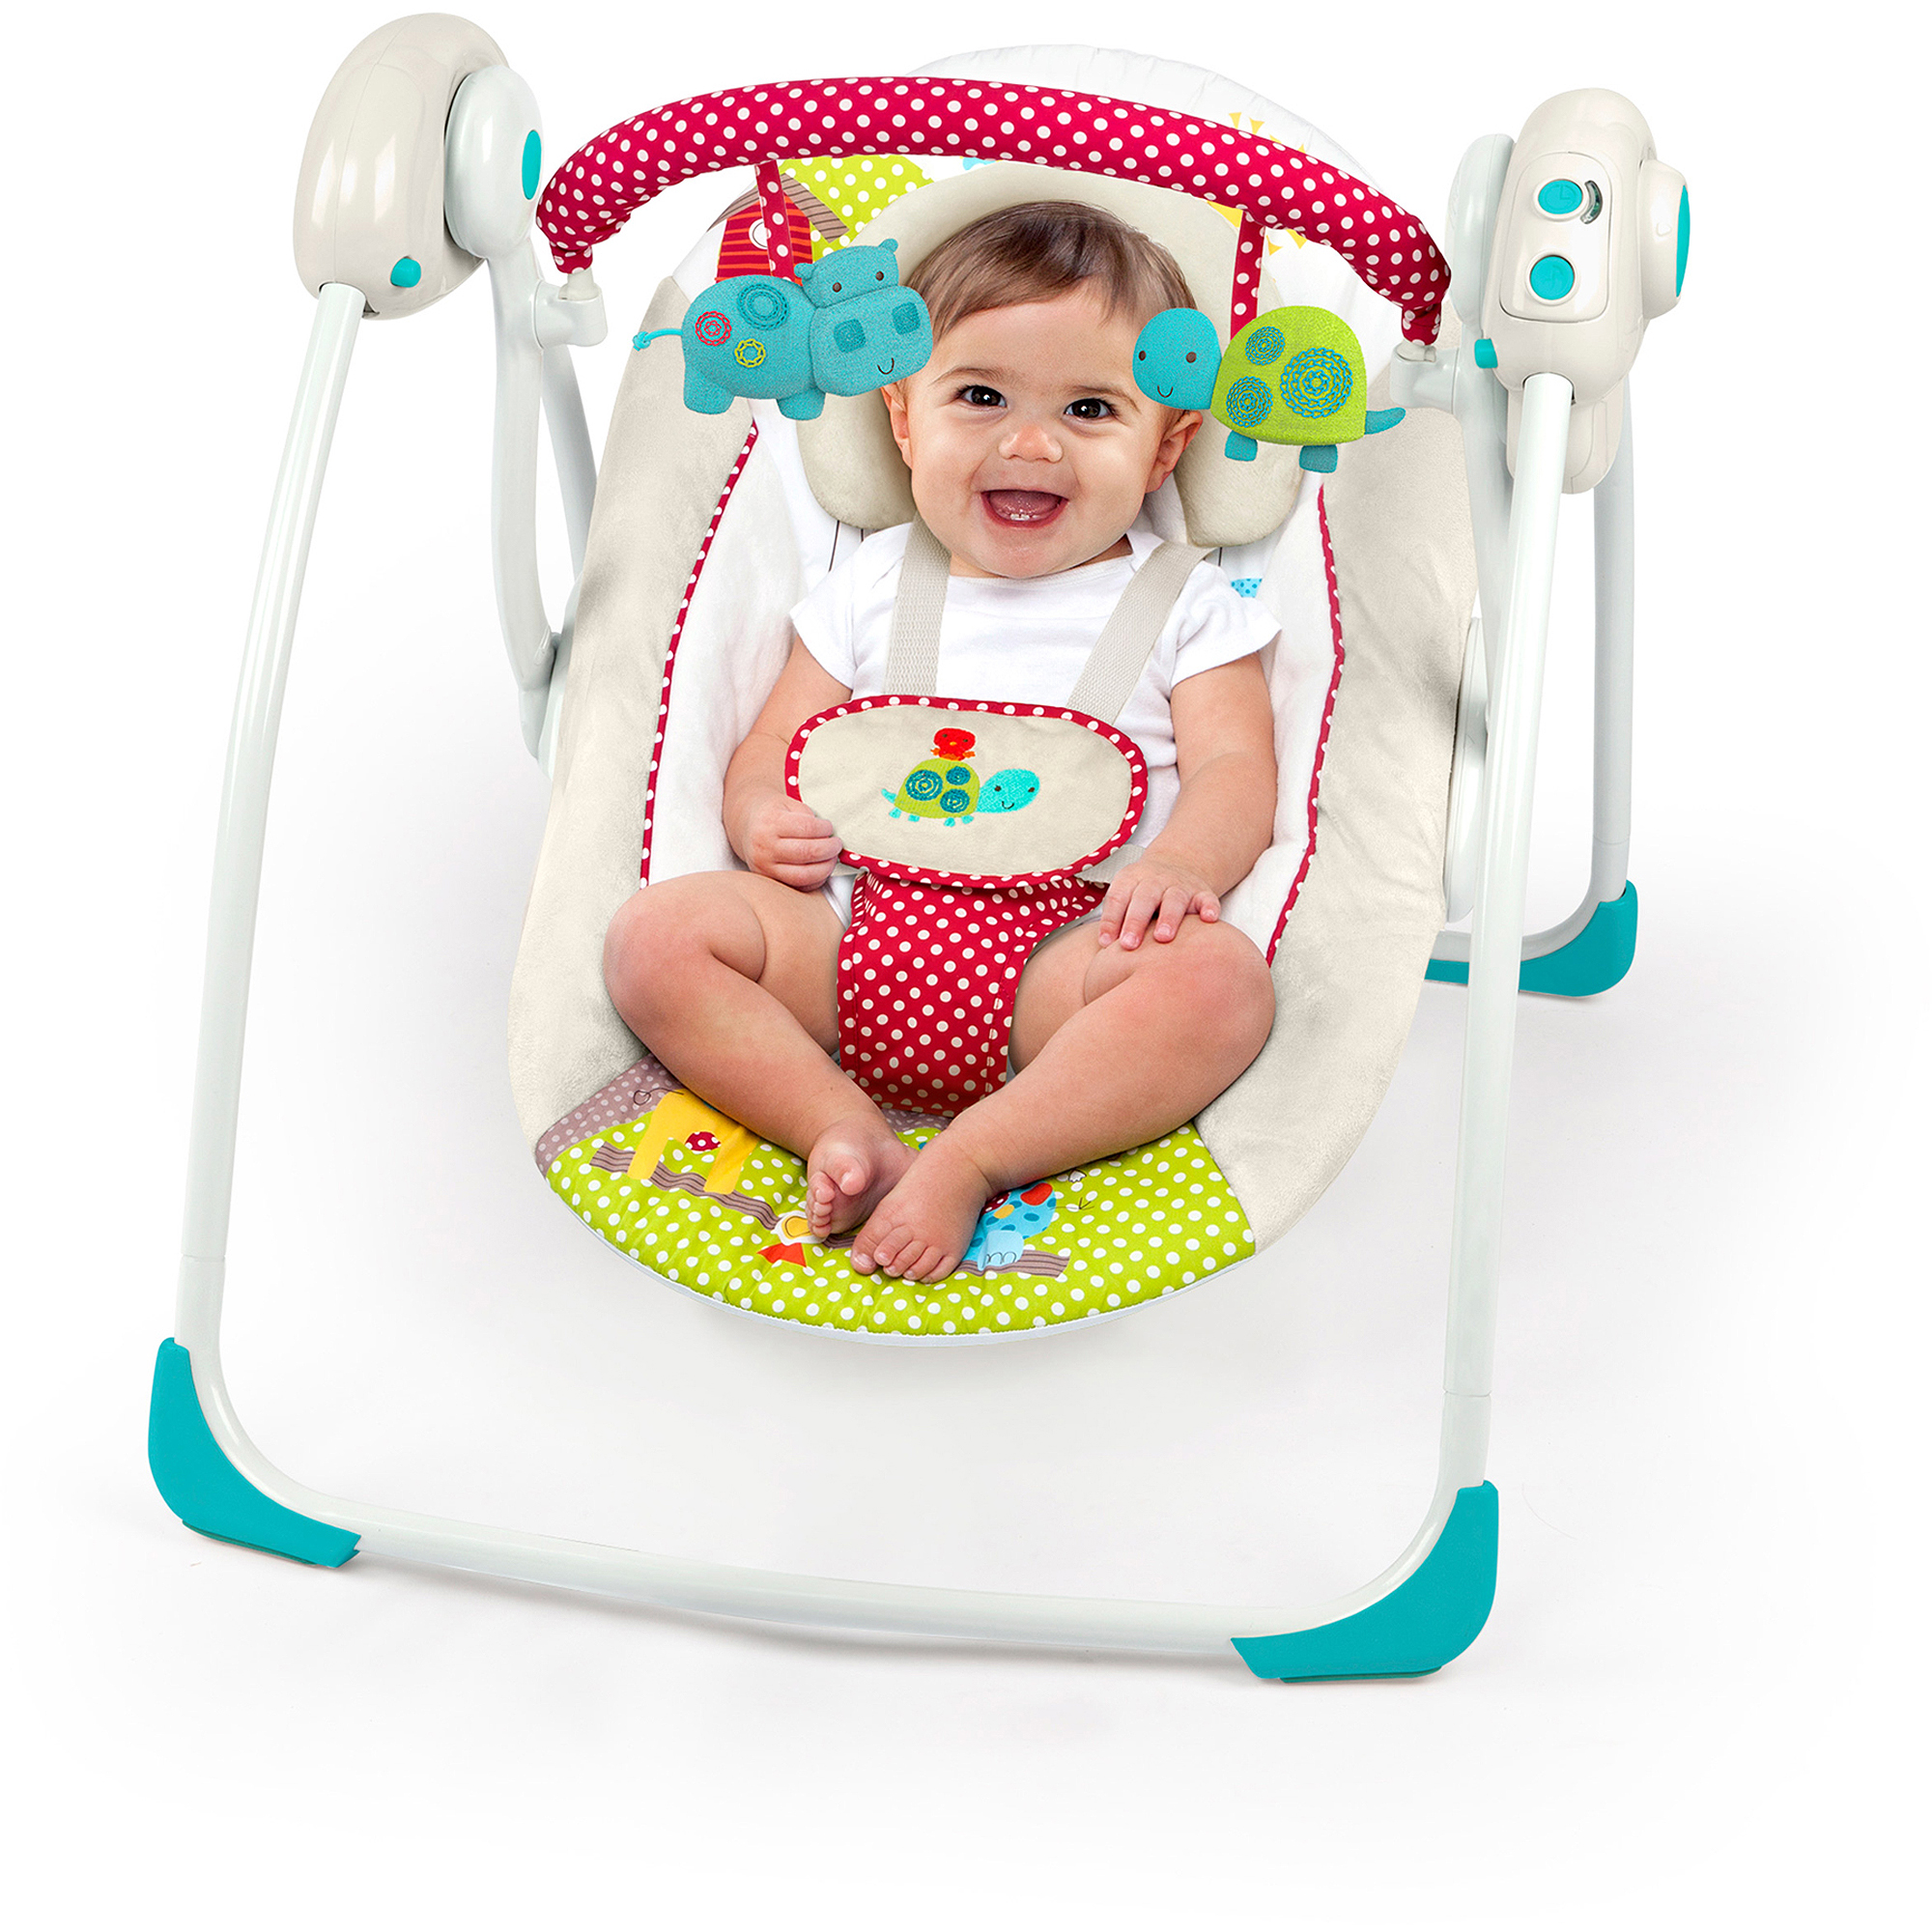 Bright Starts Polka Dot Parade Portable Swing